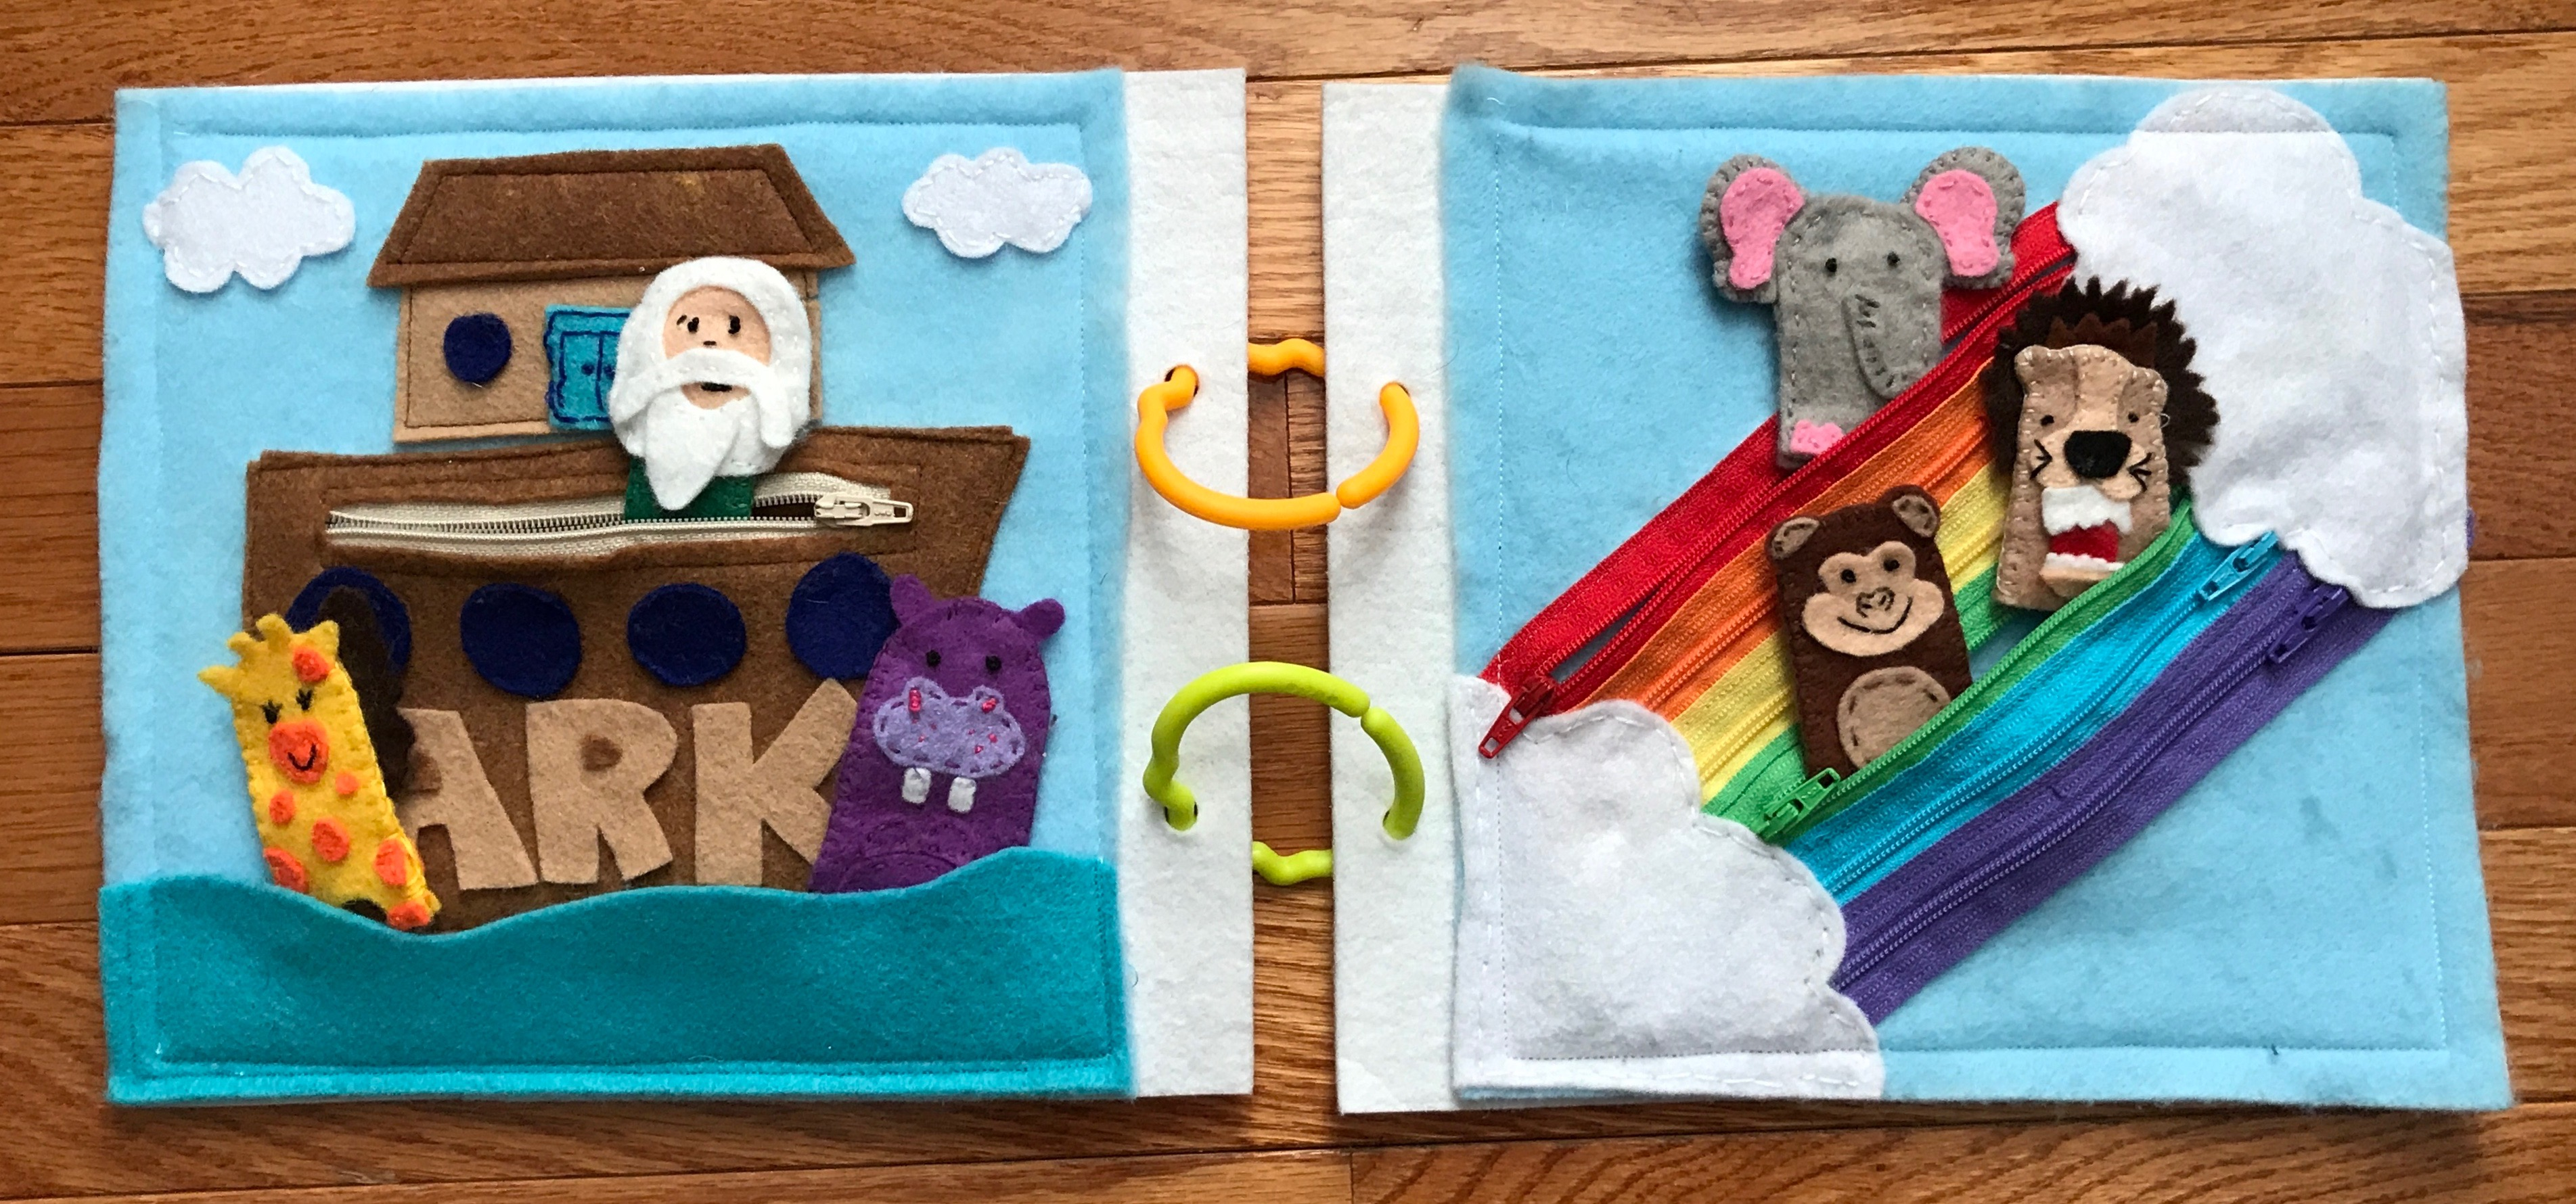 Toddler Quiet Book Ideas #toddleractivities #QuietBook #QuietBookIdeas #FunWithFelt #NoahsArk